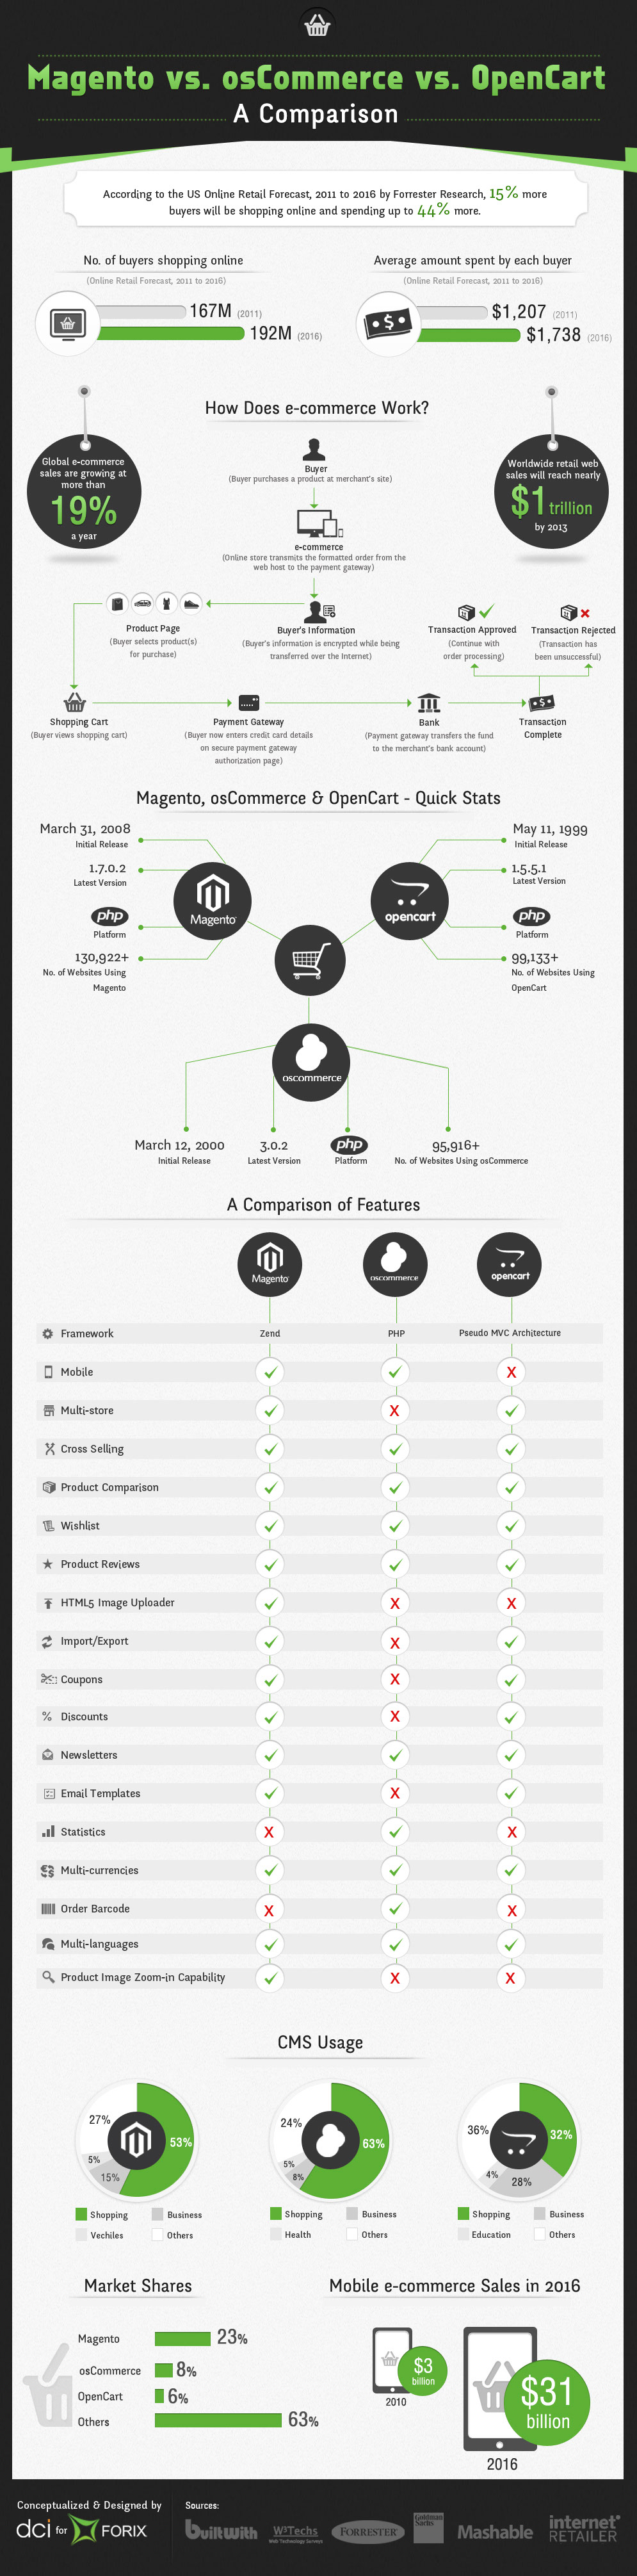 Magento osCommerce OpenCart Comparison-Infographic